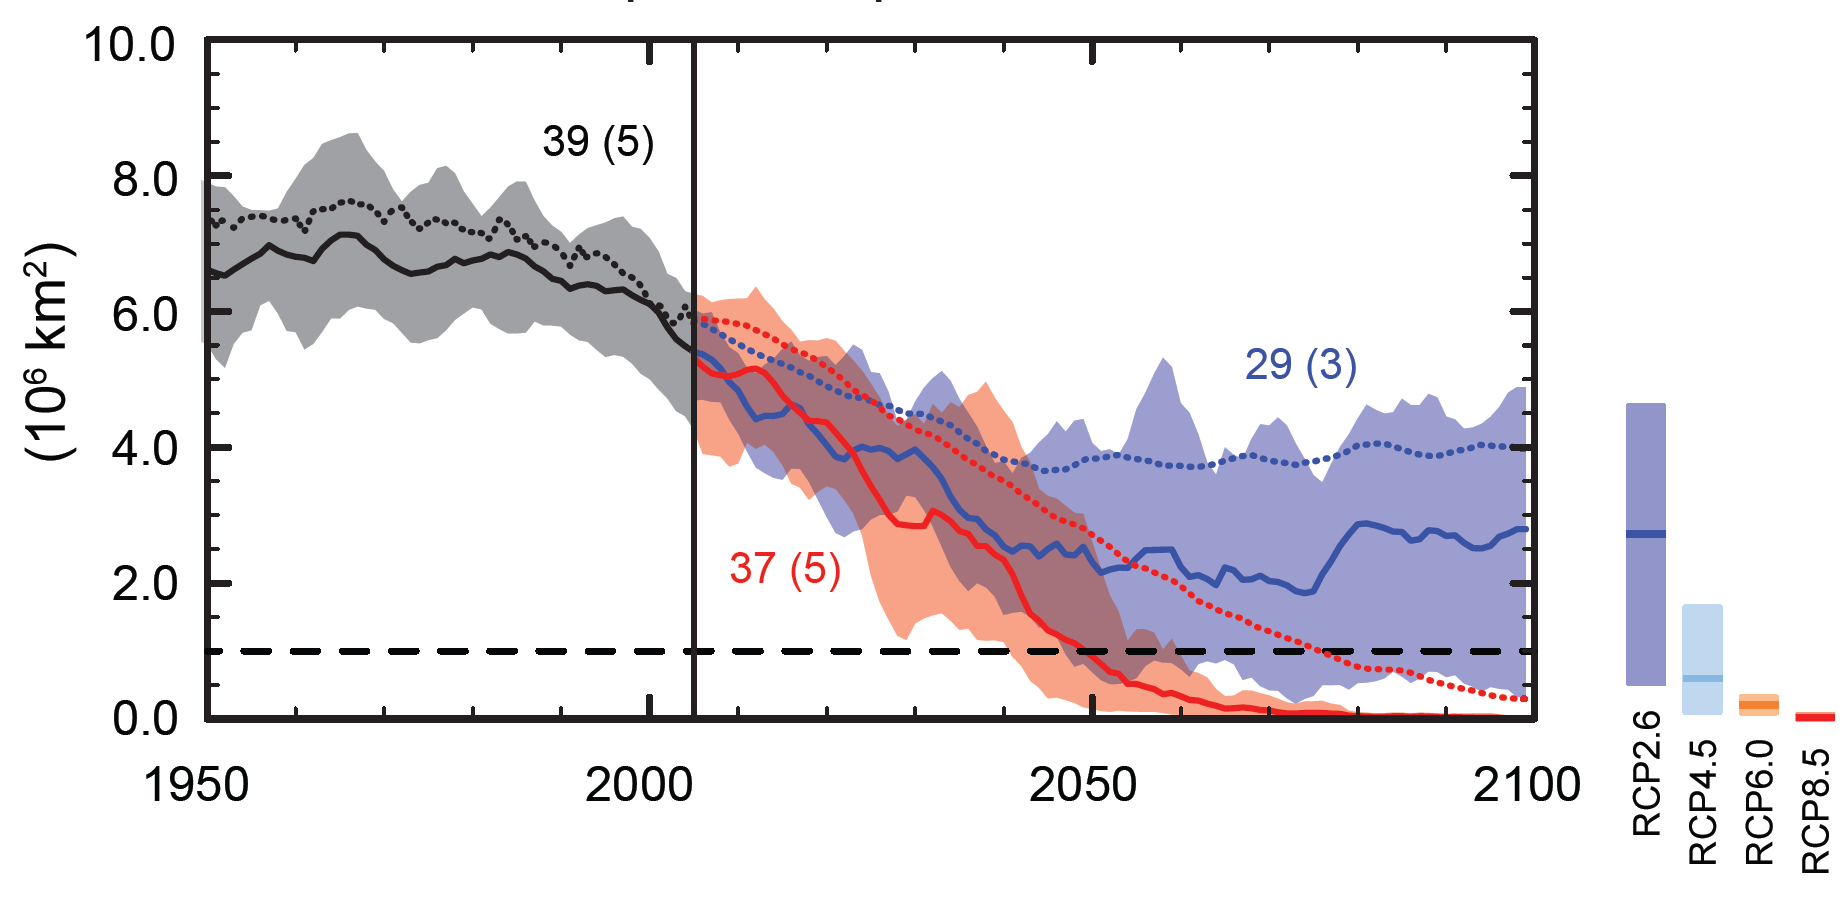 Northern Hemisphere September sea ice extent [.